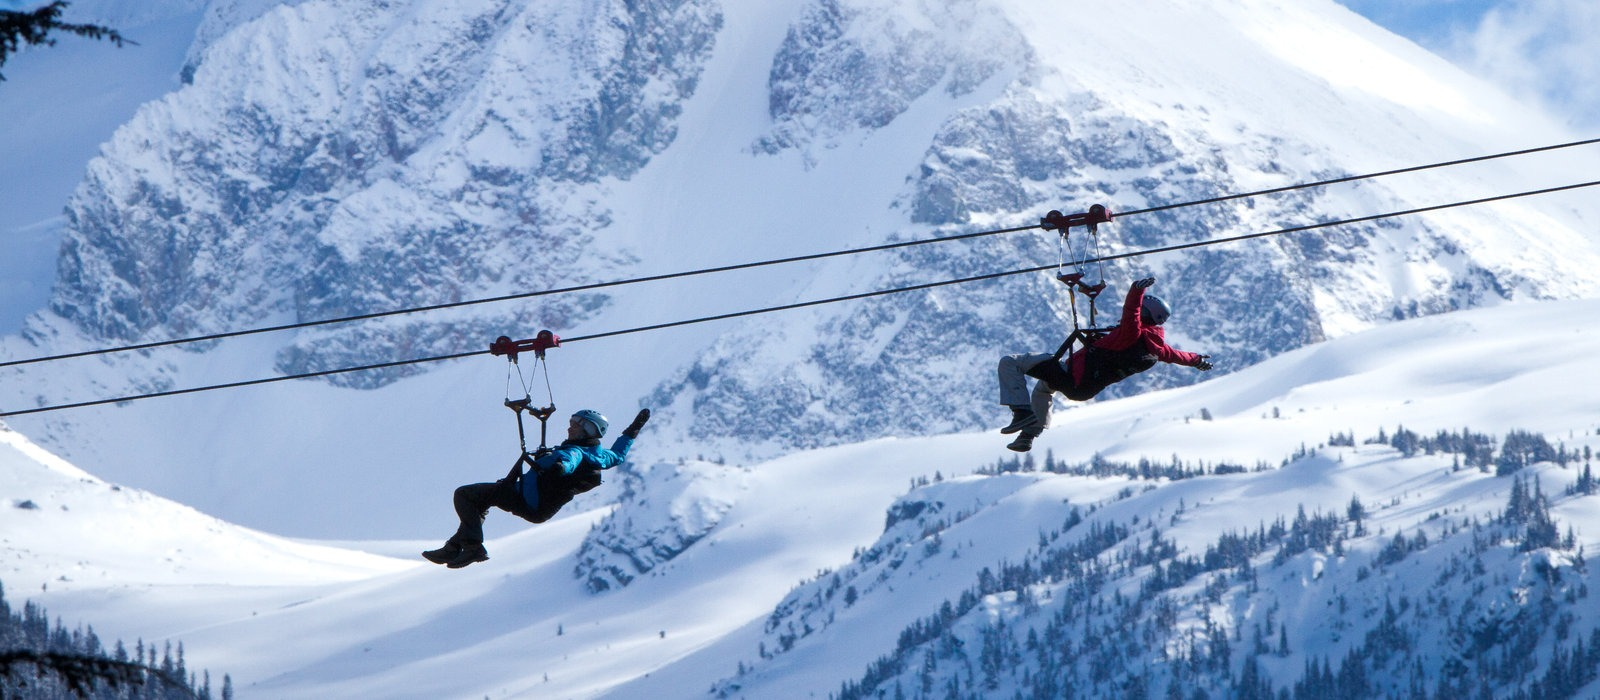 Superfly Ziplines+Dinner Tour, Whistler, British Columbia, Canada